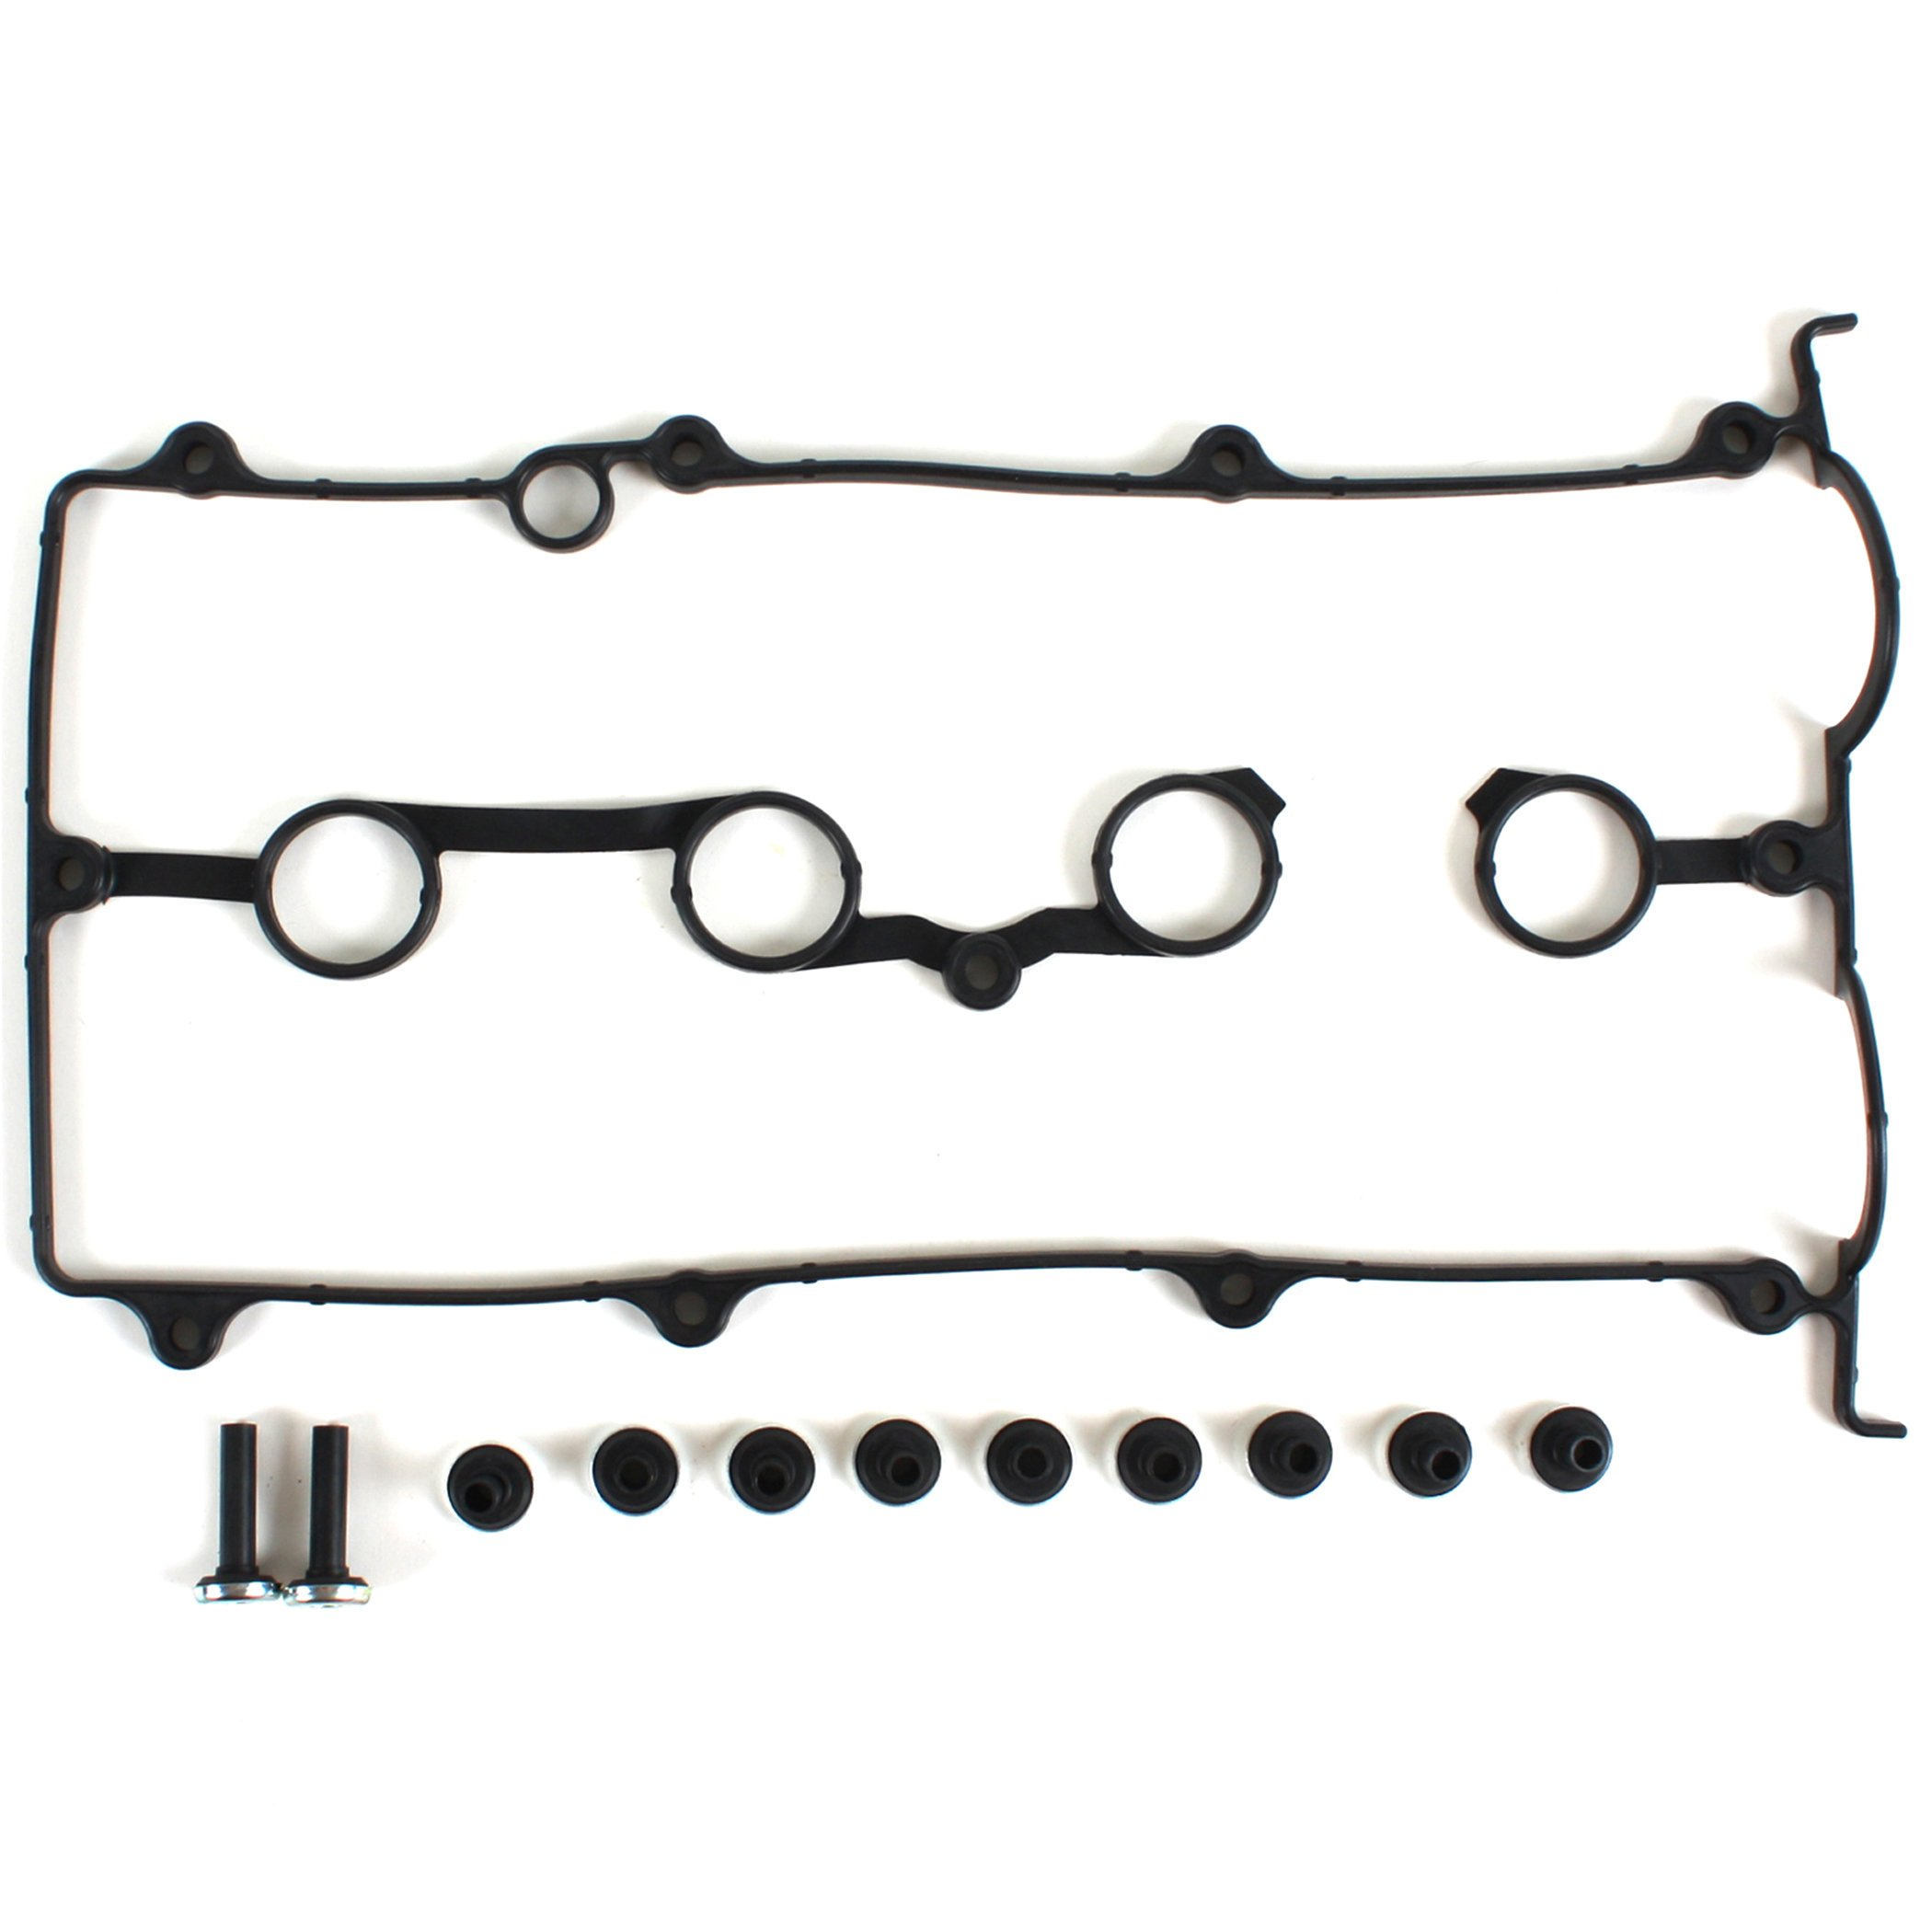 Vc440 Engine Valve Cover Gasket Set W Spark Plug Seal